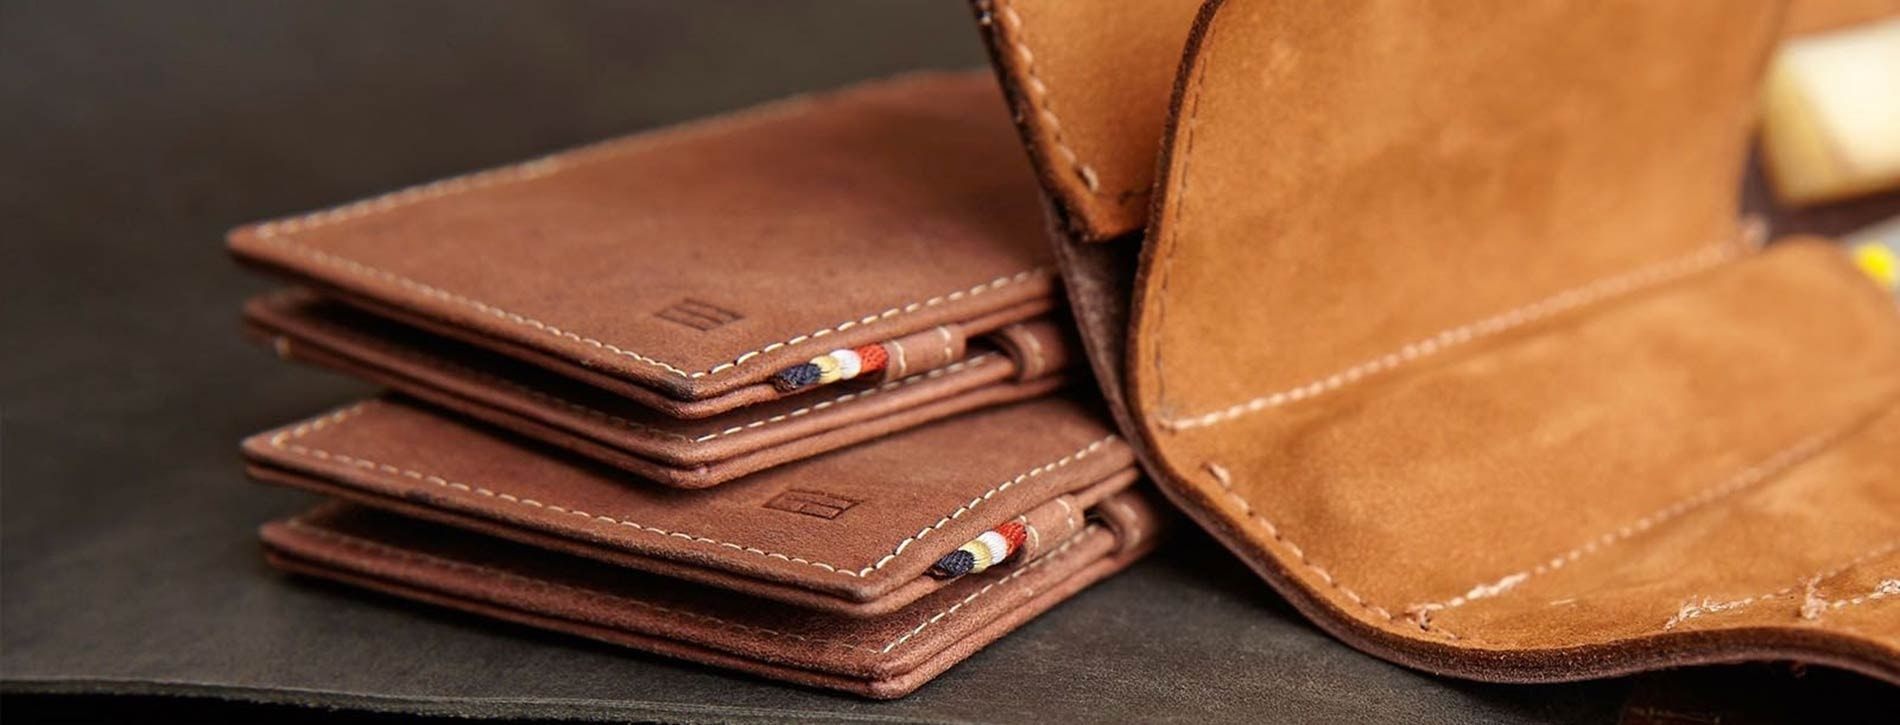 Garzini magic wallet